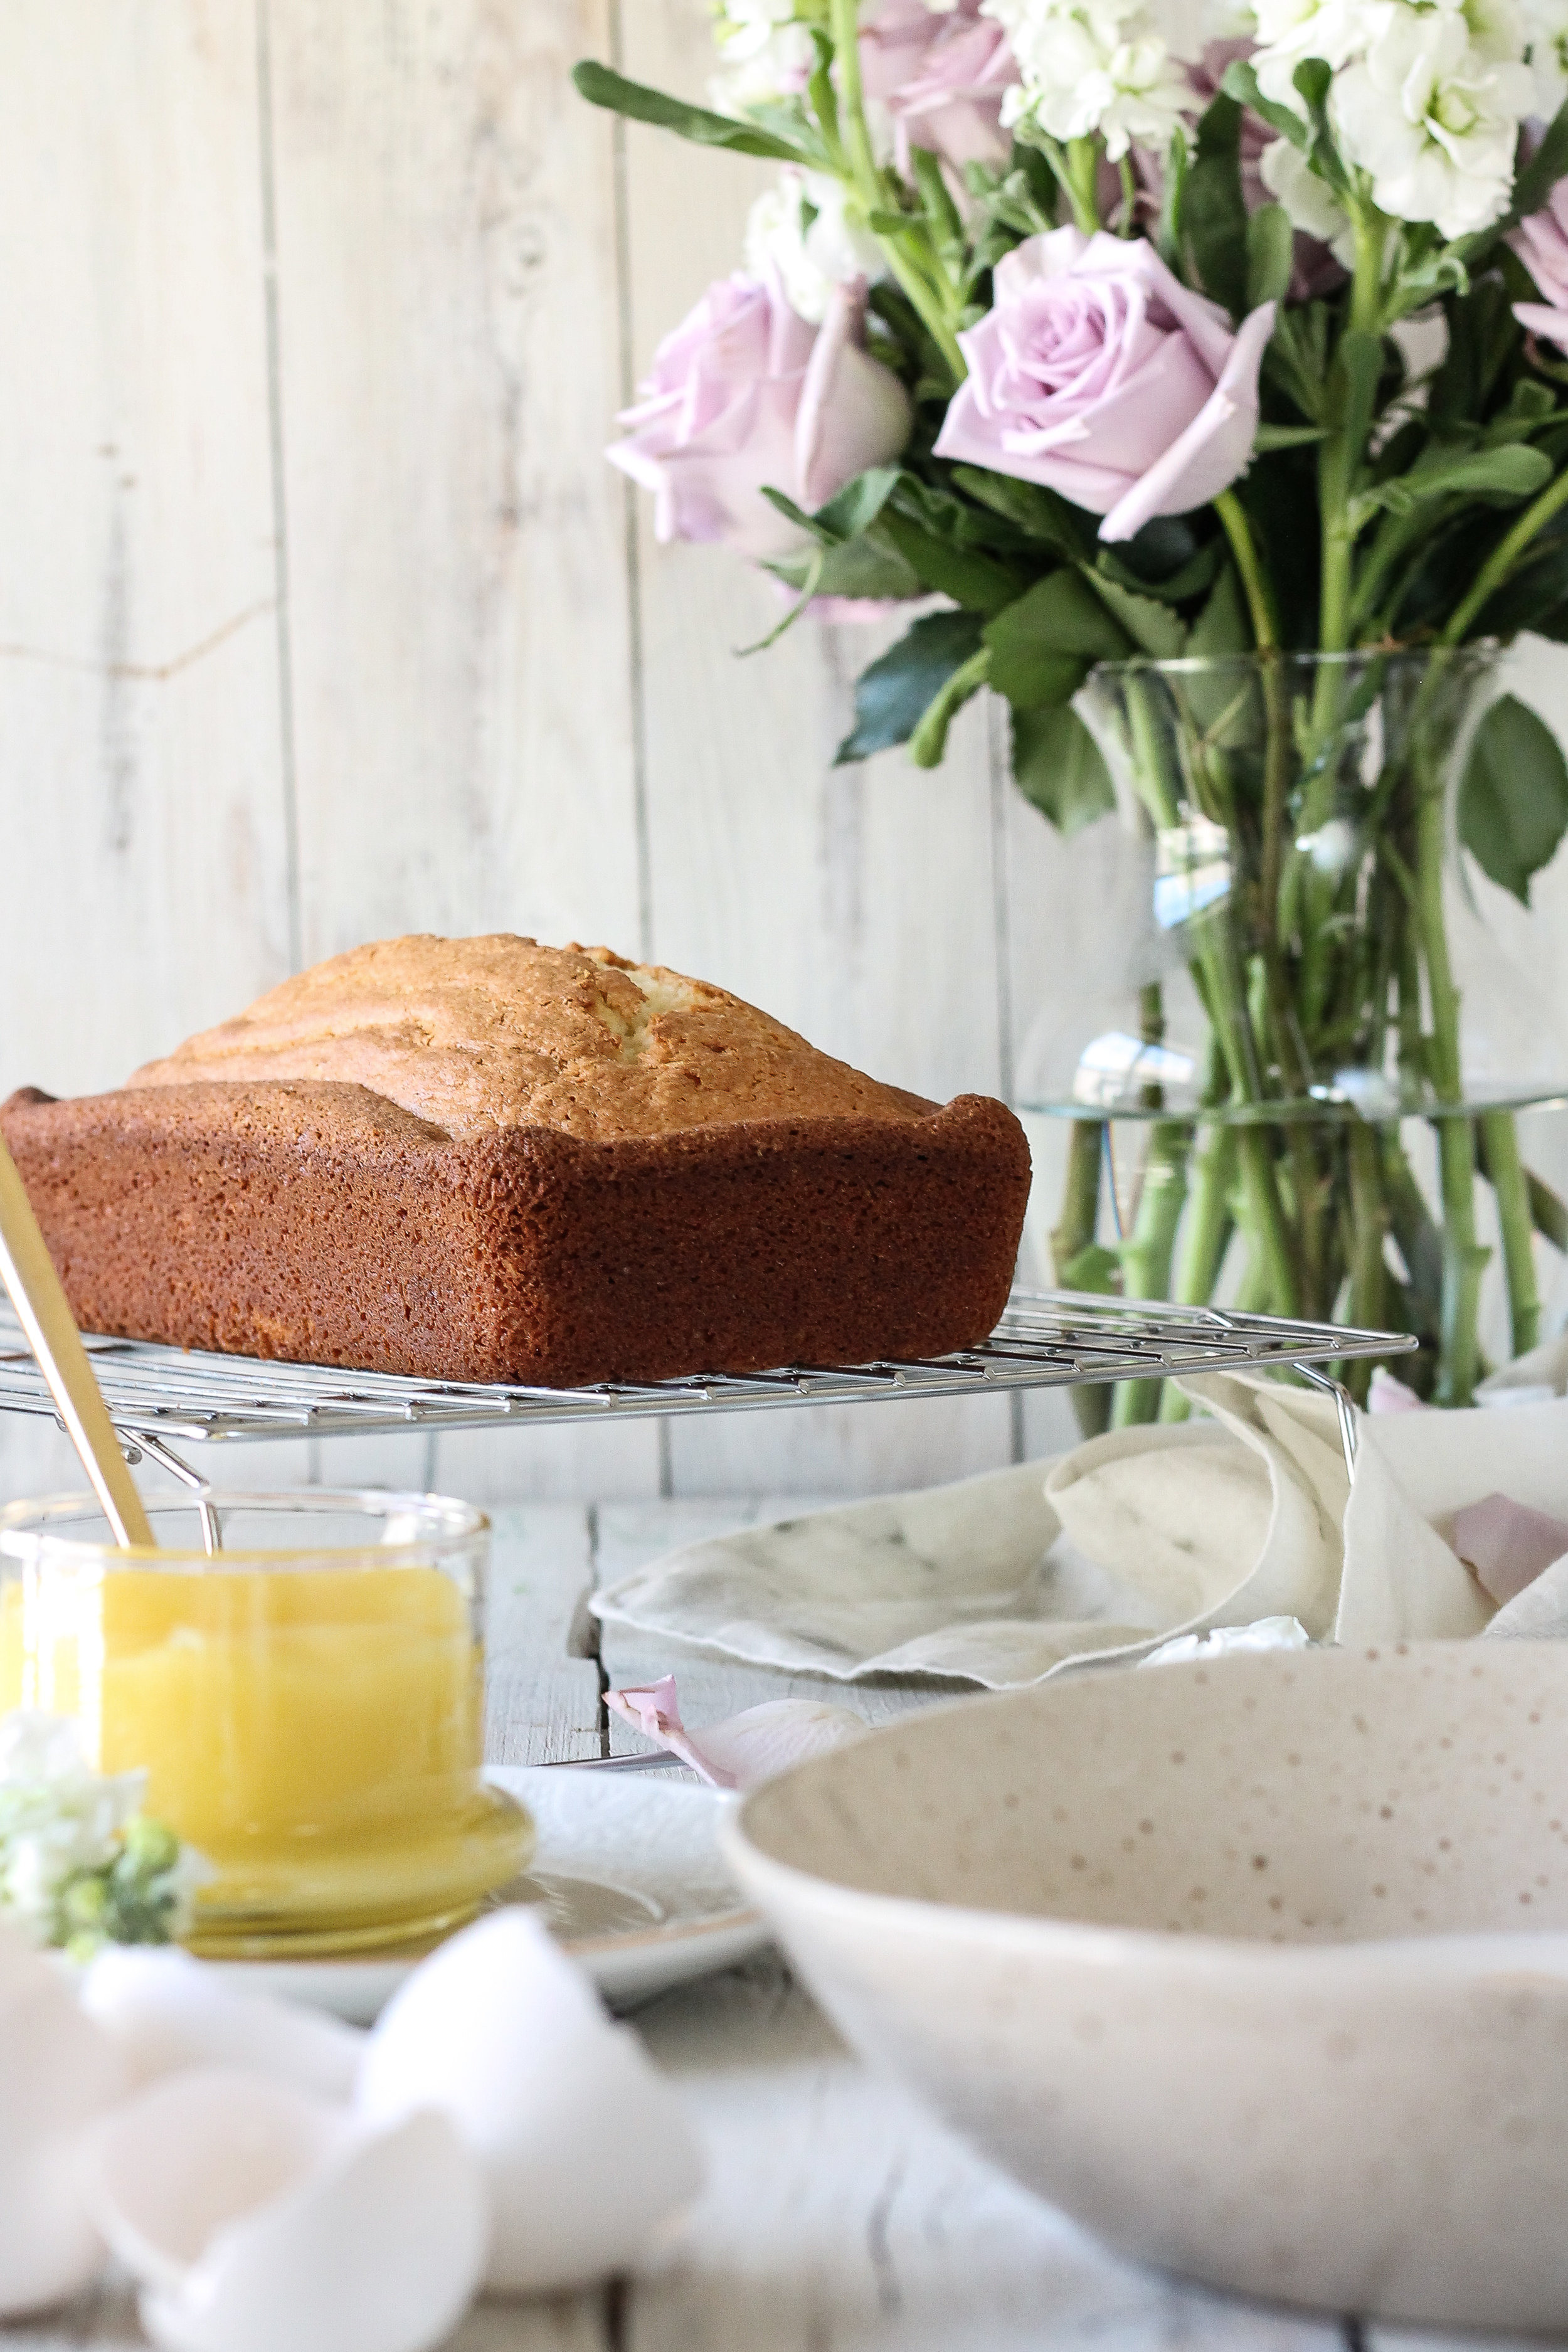 Who knew cake could get any better?  This Pan-Fried Almond-Crusted Pound Cake makes all of your dreams come true!  Find the recipe on www.pedanticfoodie.com!!